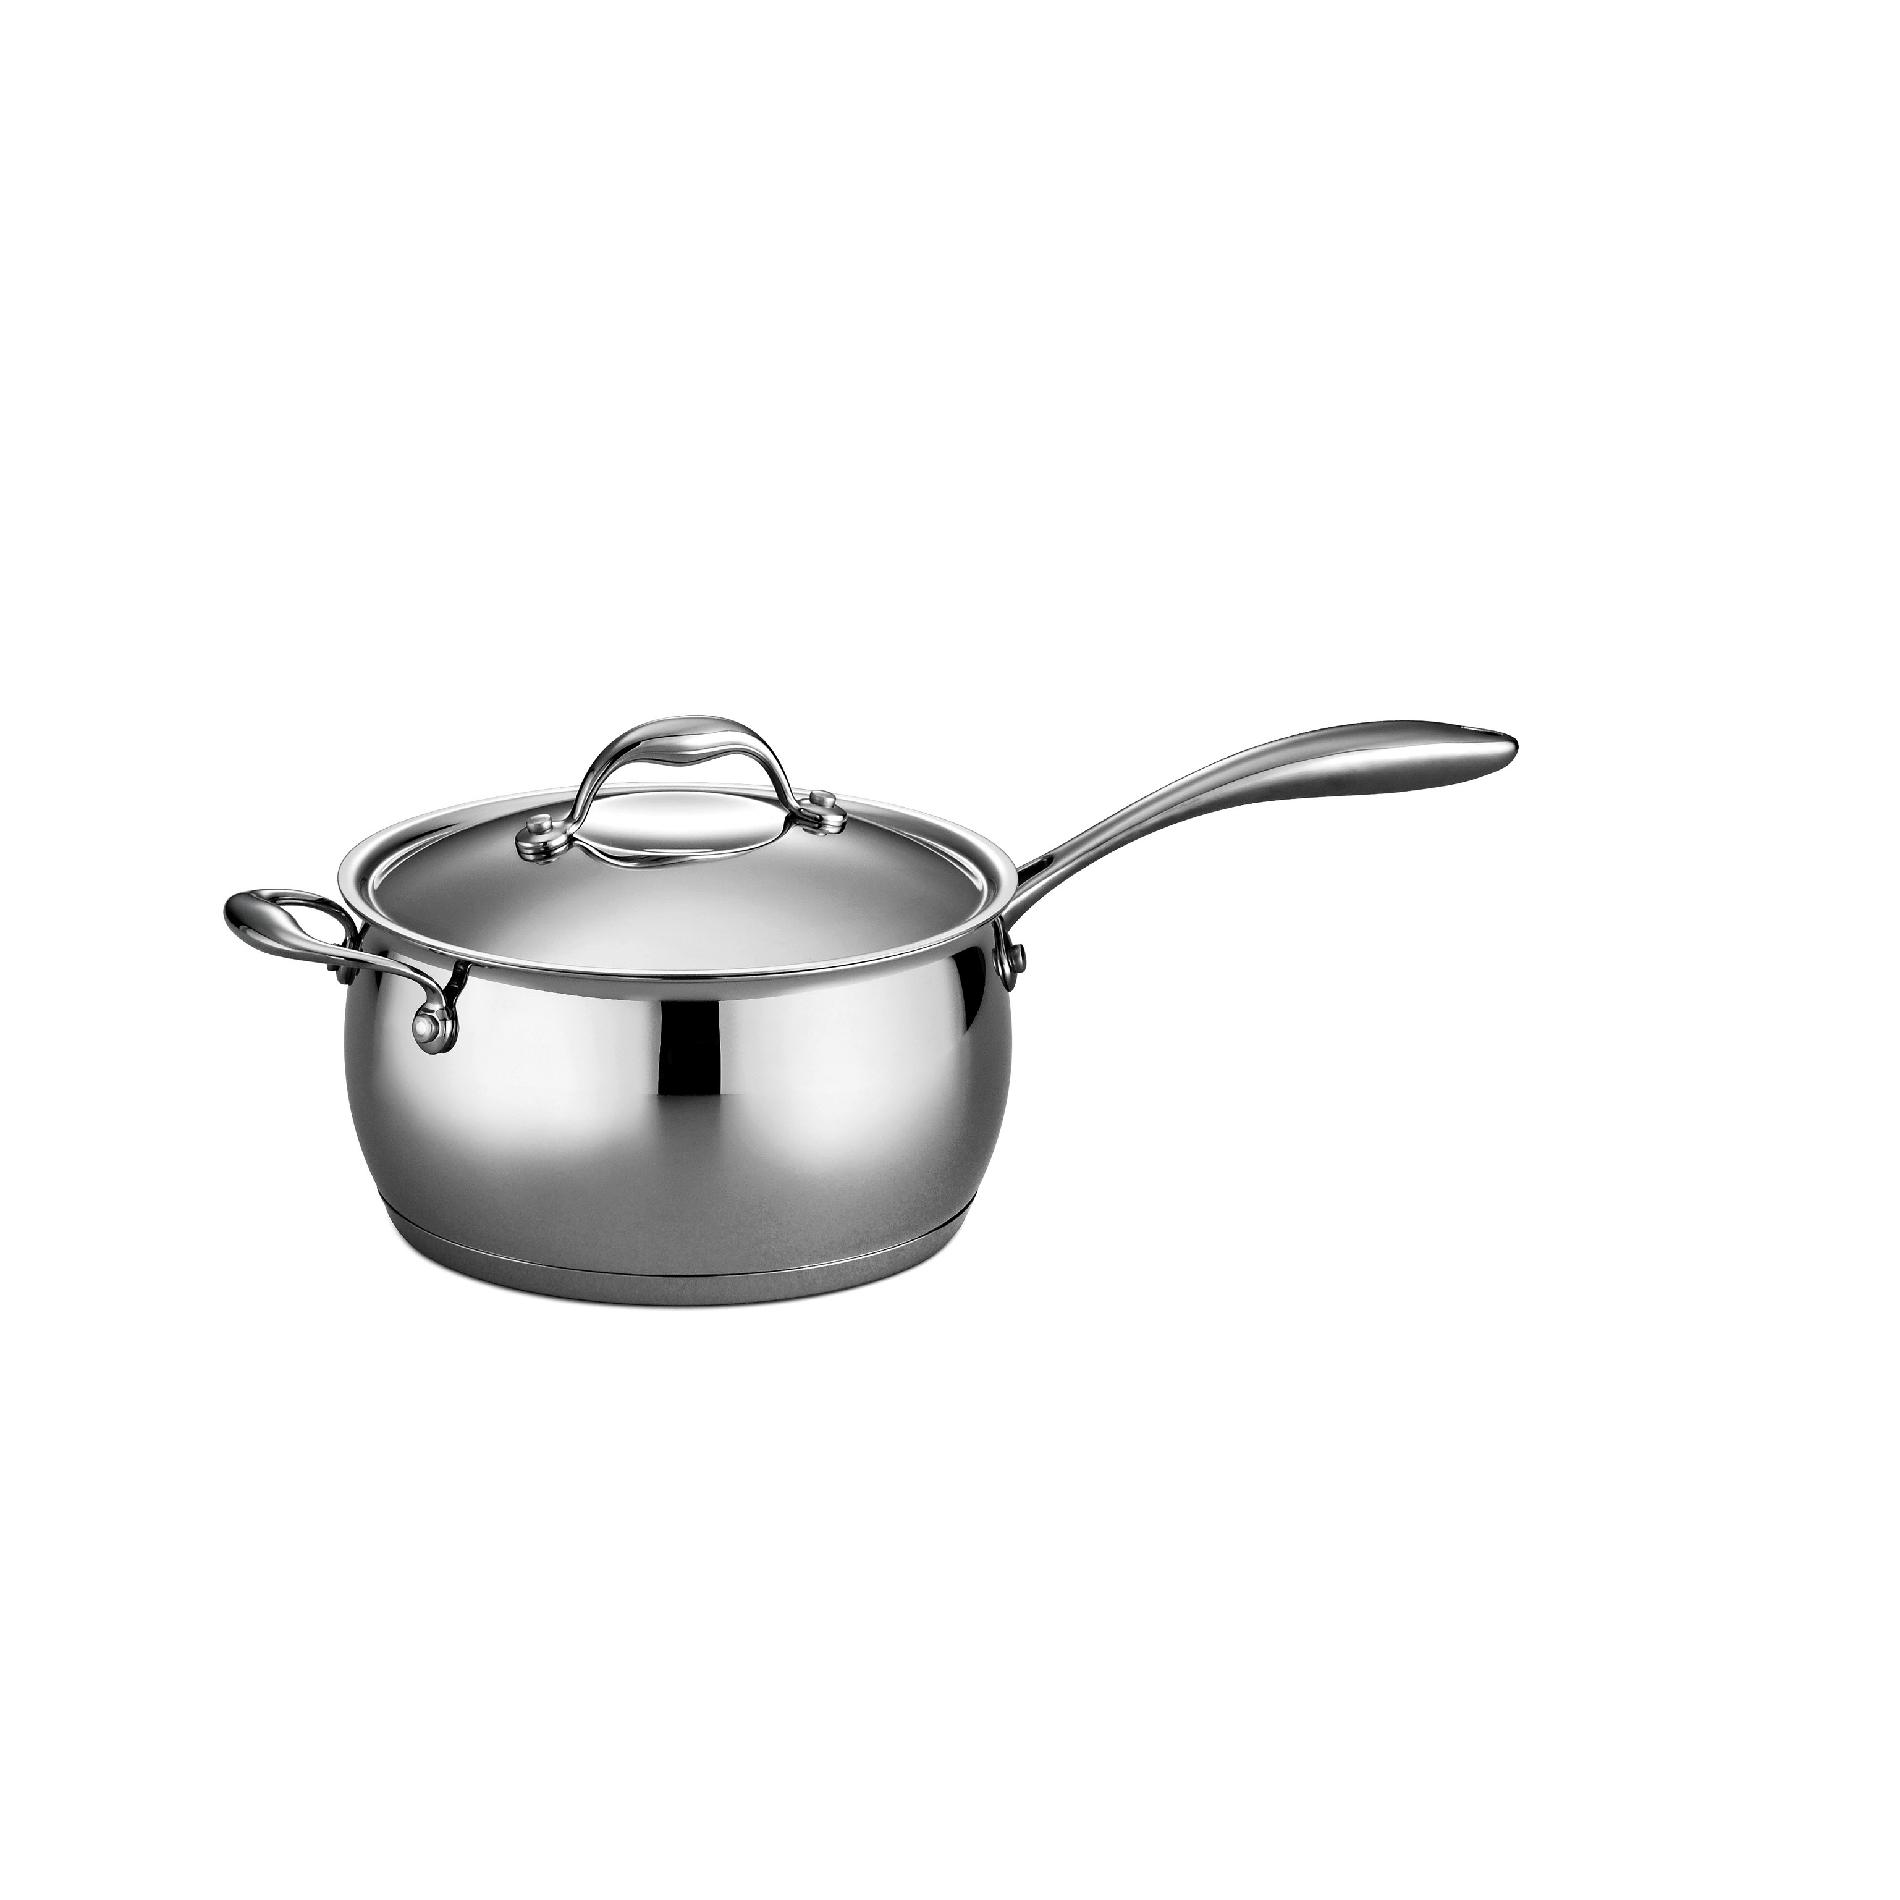 Tramontina Gourmet - Domus 18/10 Stainless Steel 4 Qt Covered Sauce Pan with Helper Handle PartNumber: 00811167000P KsnValue: 8578374 MfgPartNumber: 80102/006DS